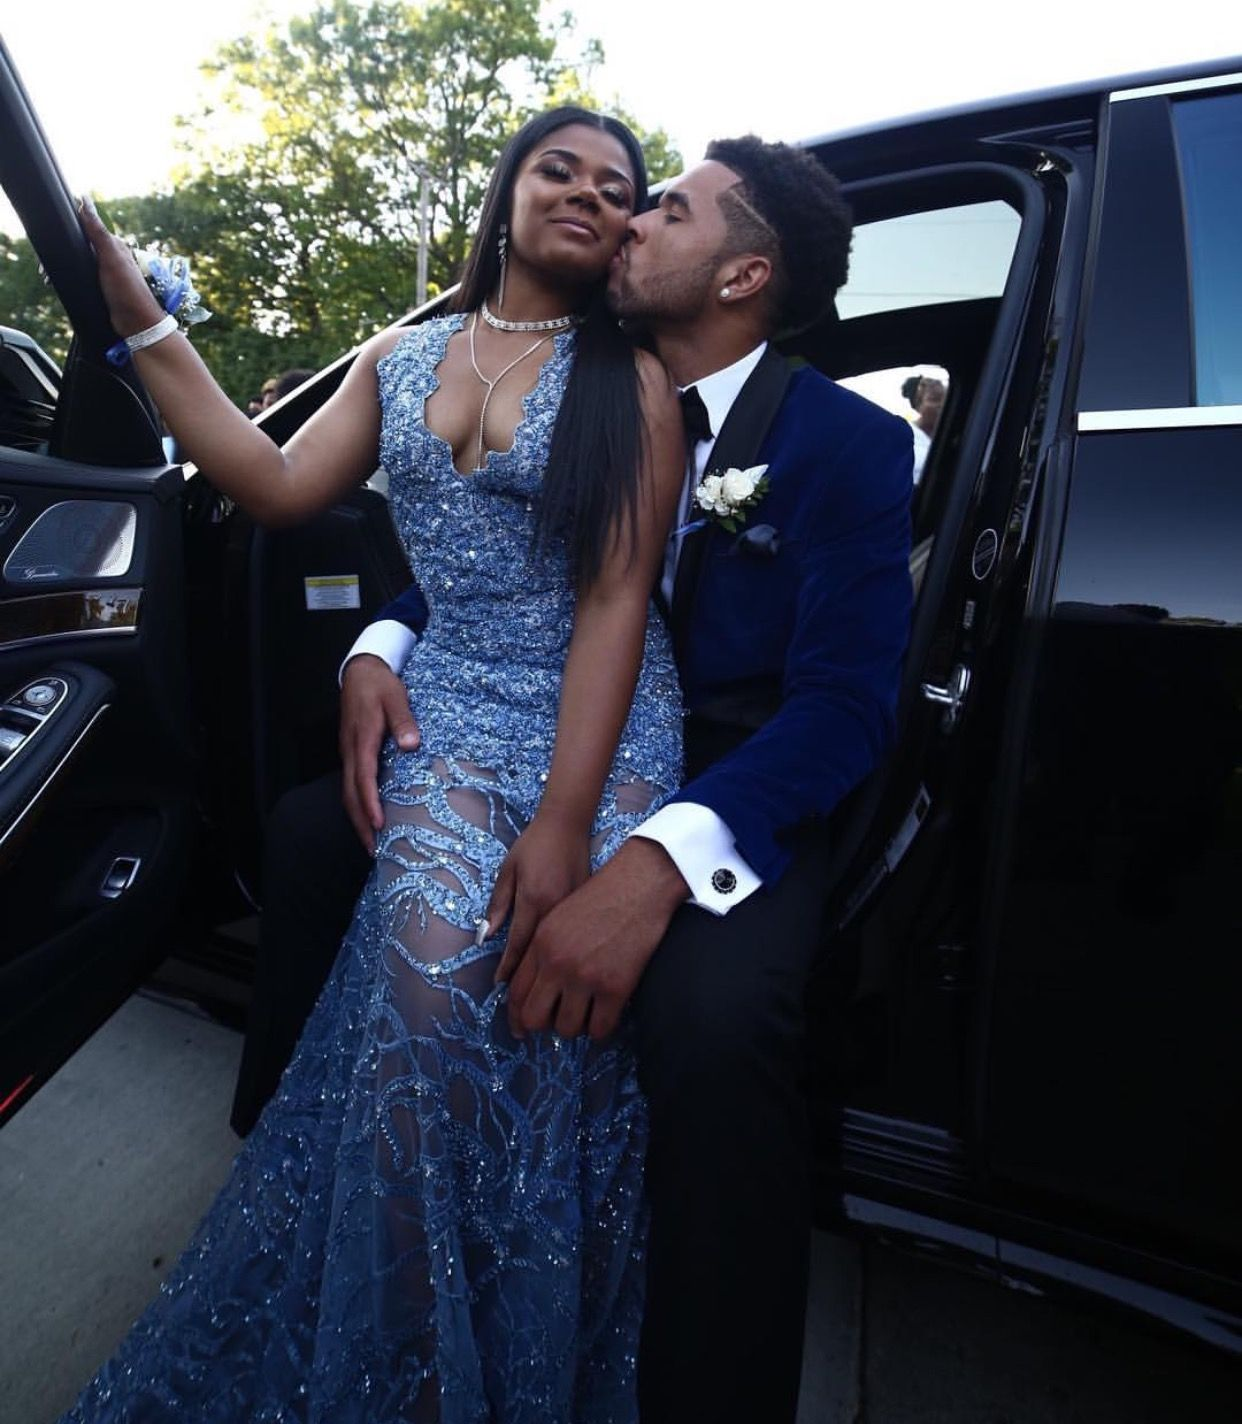 This how i wanna be for prom booed up they did that follow us y